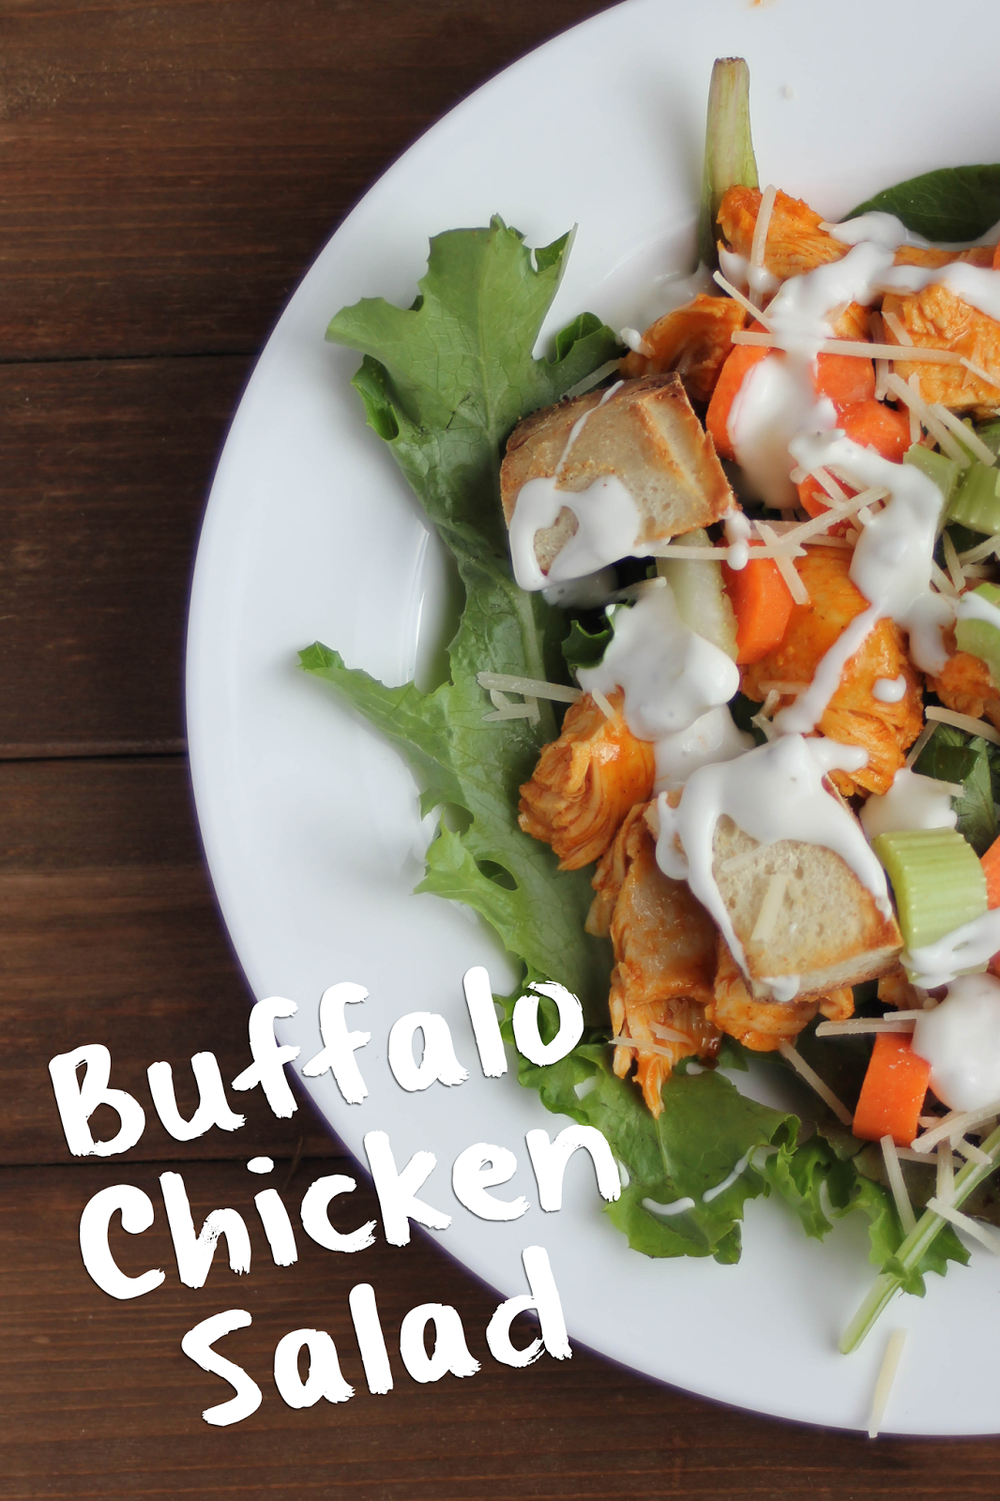 It's that epic combination of buffalo sauce and blue cheese that makes this salad SO.GOOD. http://www.littlecityadventures.com/2015/08/recipe-buffalo-chicken-salad.html #littlecitykitchen